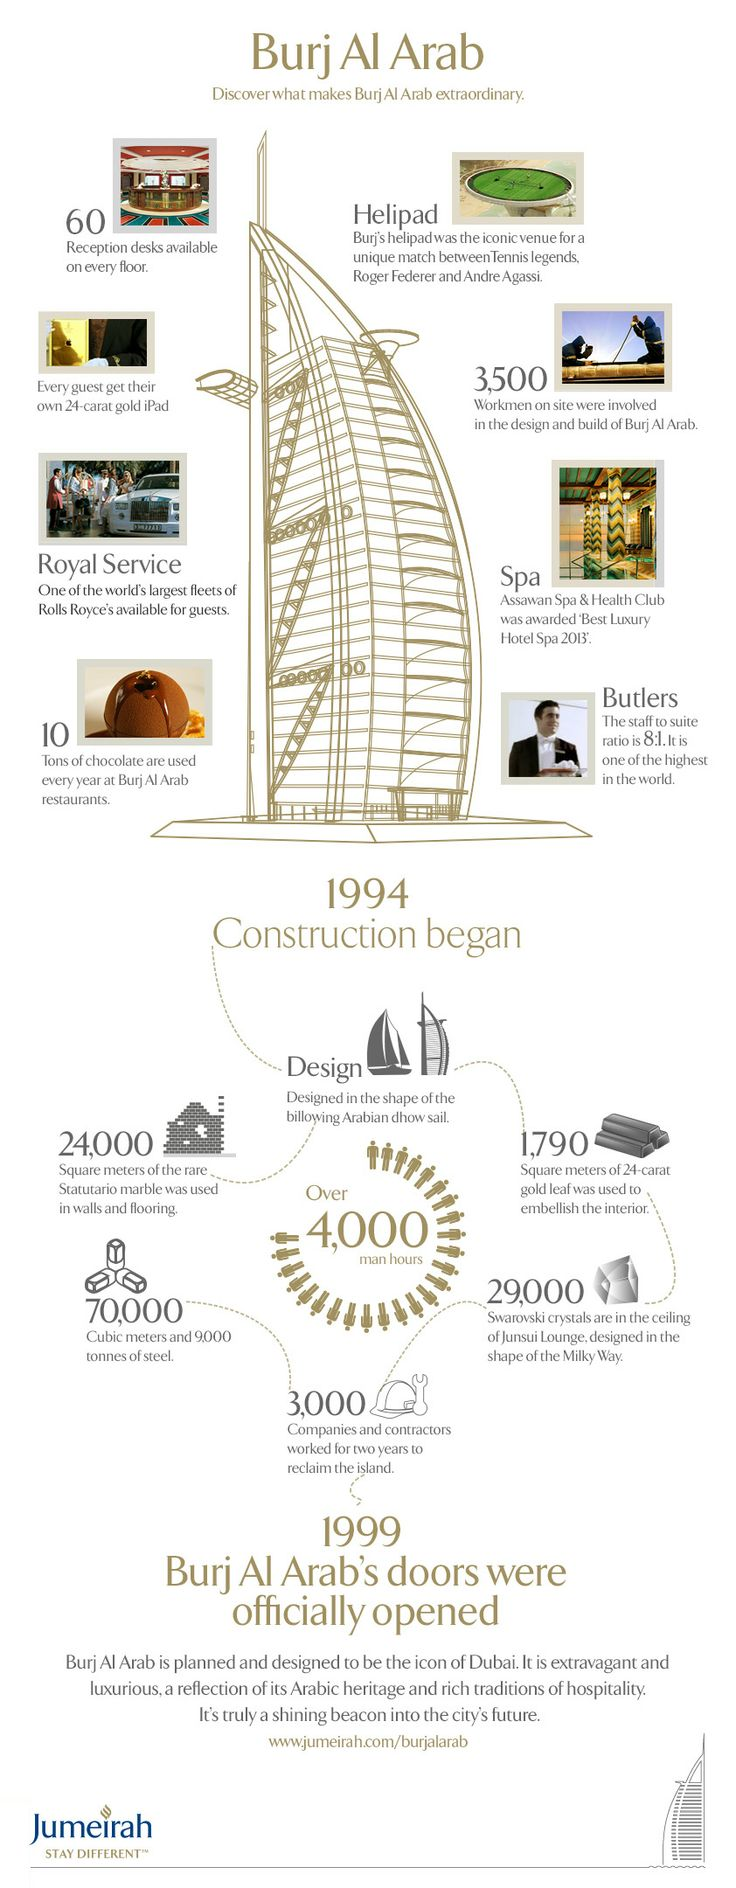 This image shows the production of the Burj Al Arab. This line drawing shows the basic structure of the hotel. I like how the lines are in a very organised and ordered structure.